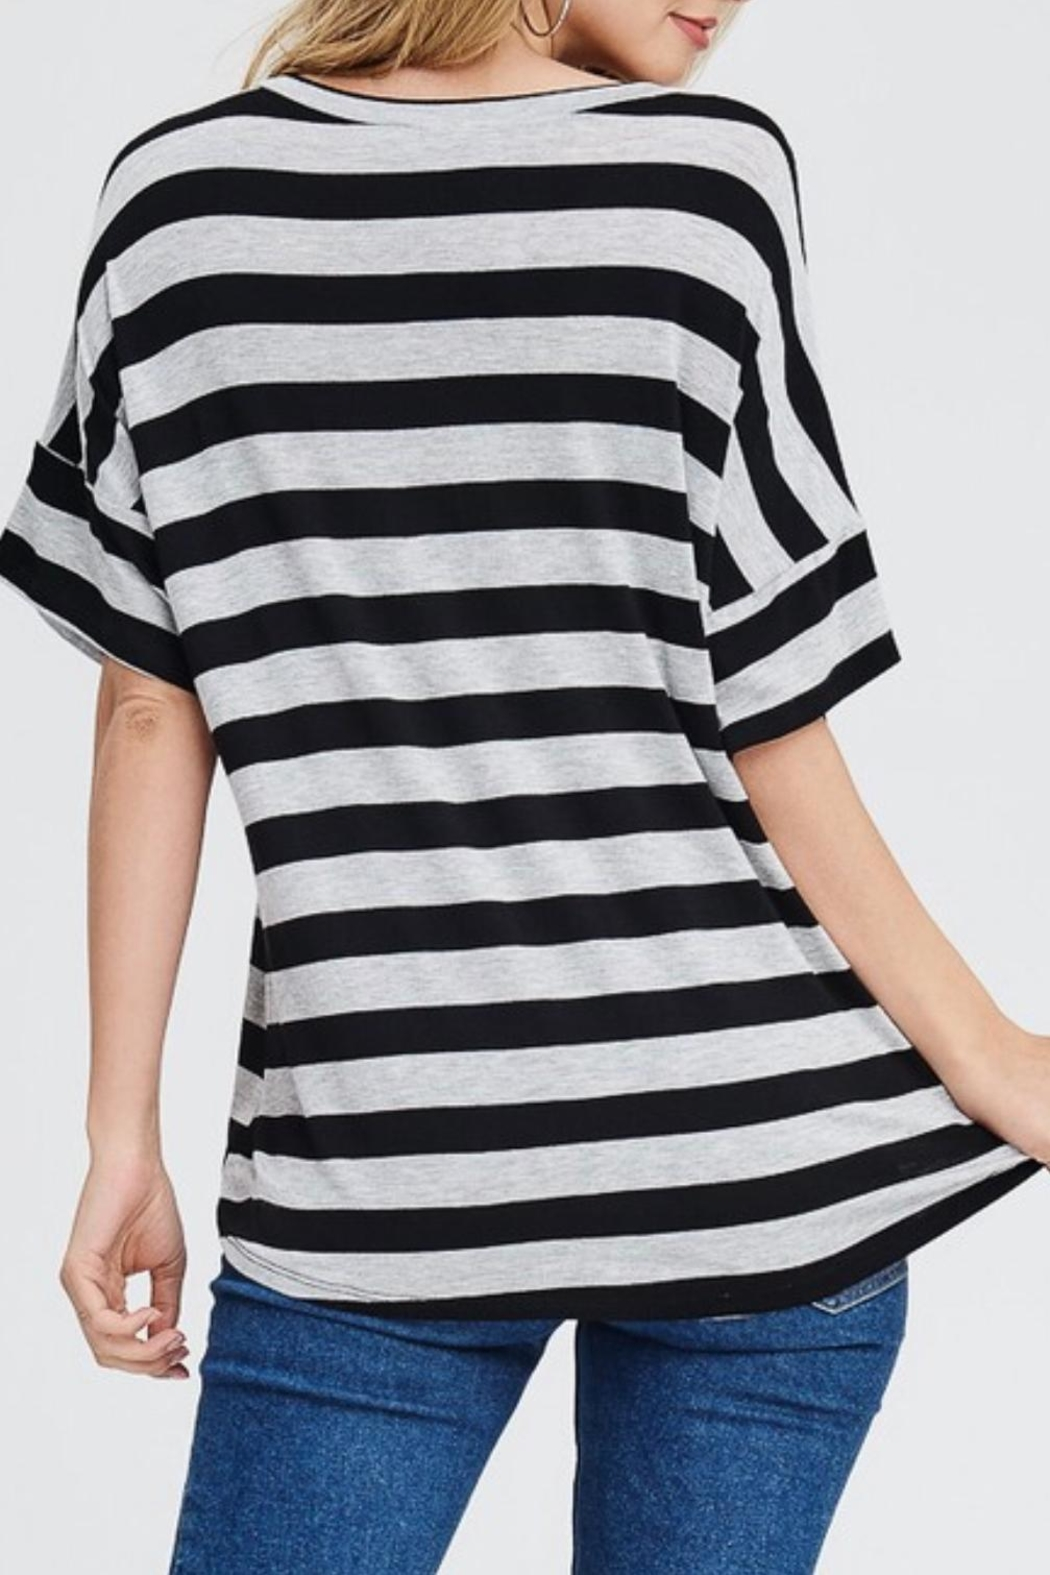 Jolie Striped V-Neck Top - Front Full Image